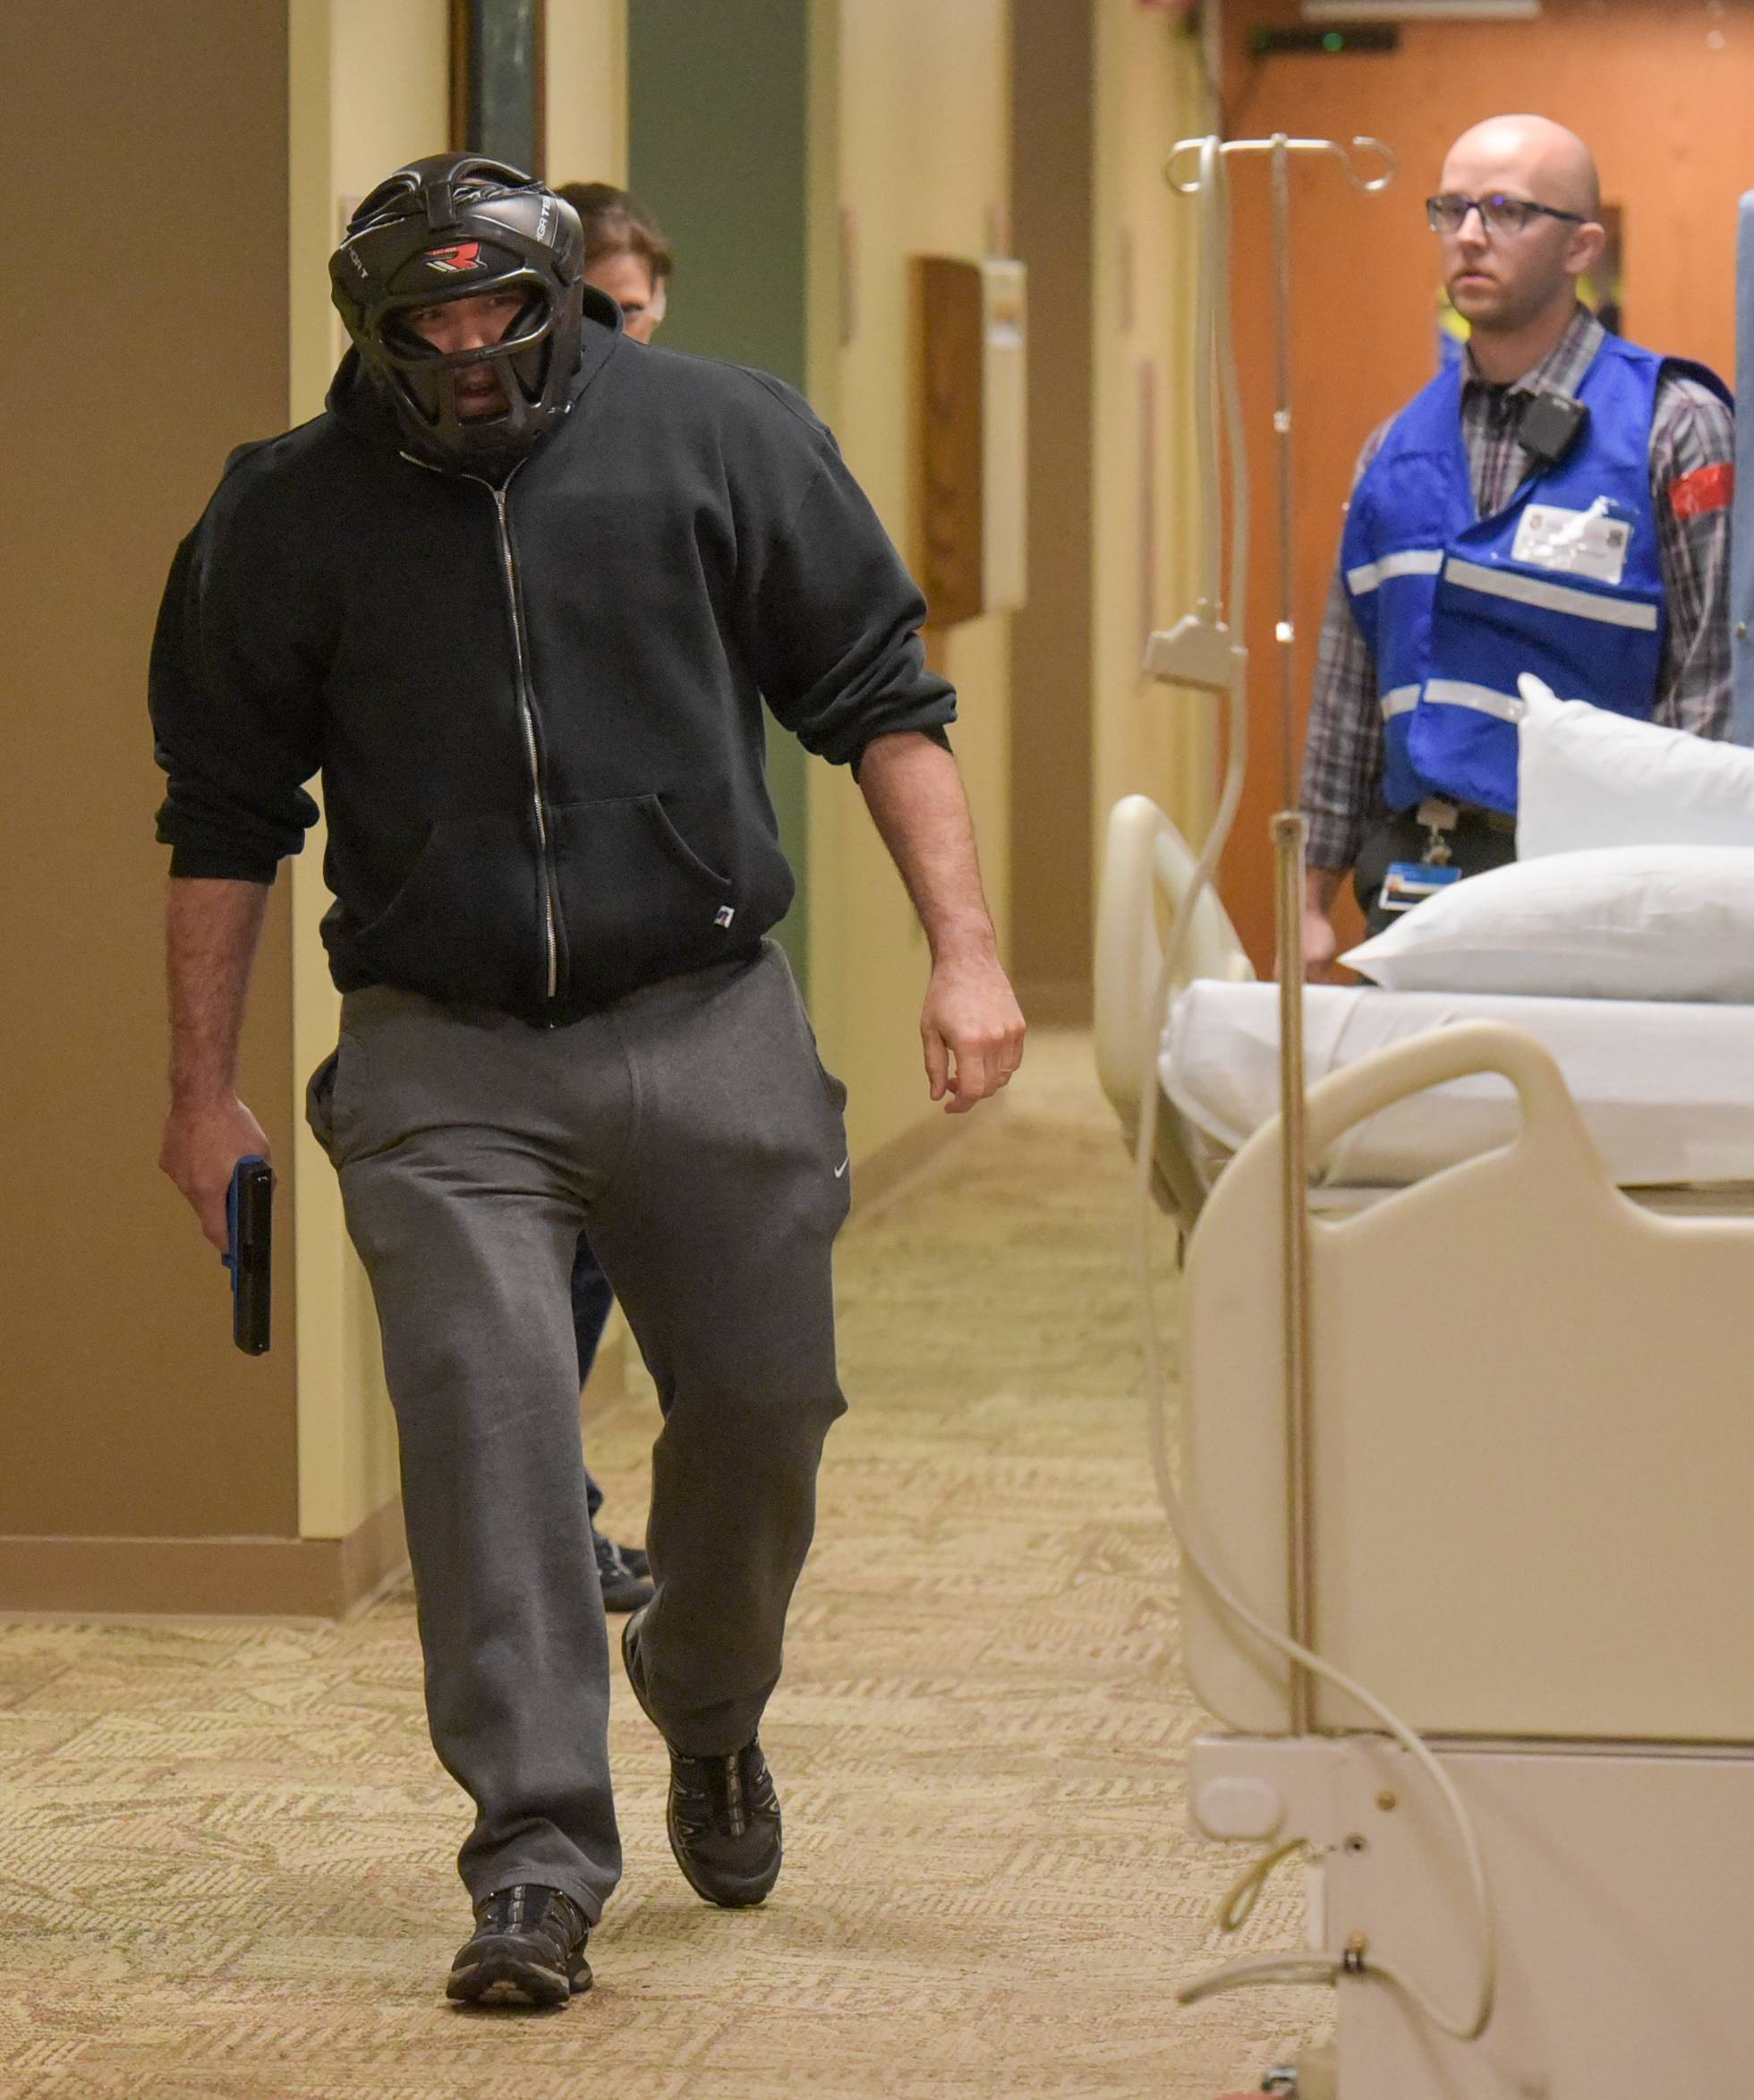 During an active shooter drill Thursday morning at Edward Hospital, a Naperville police SWAT officer playing the shooter makes his entrance into a unit on the first floor, seeking the doctor who had given him bad news about his father's prognosis.